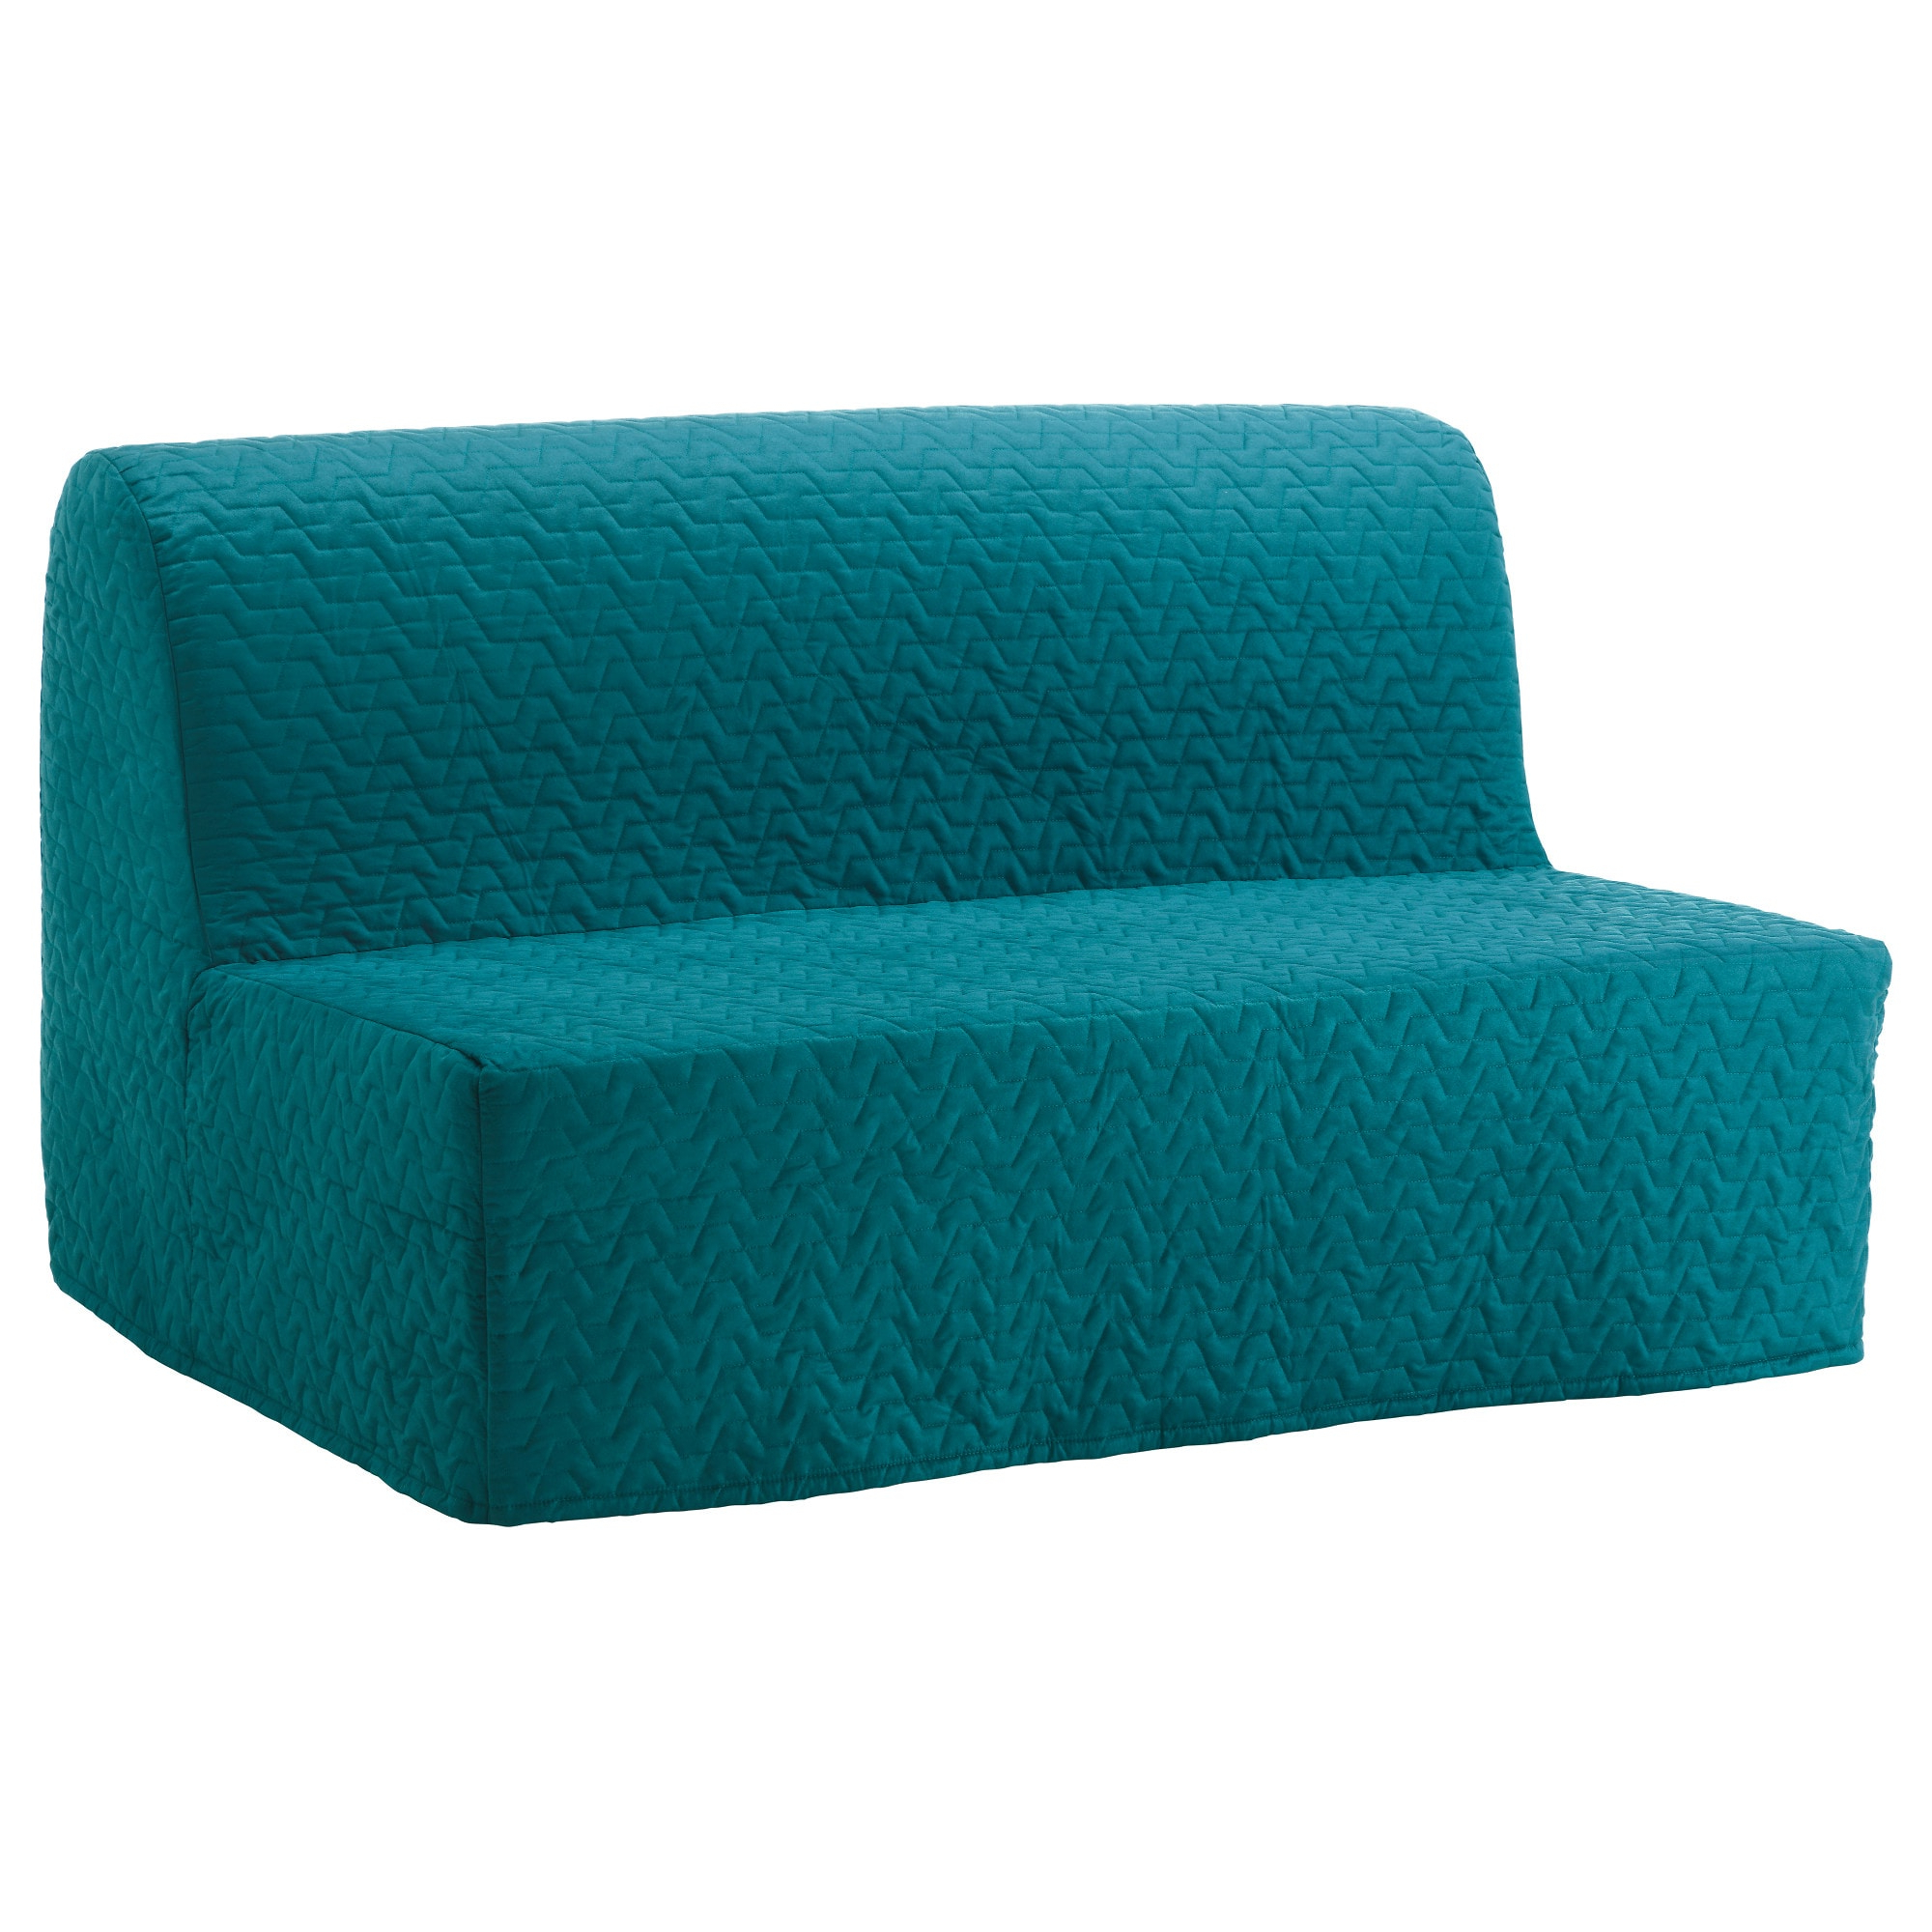 Ikea Sofa Chairs Within Recent Lycksele Murbo Two Seat Sofa Bed Vallarum Turquoise – Ikea (View 10 of 20)